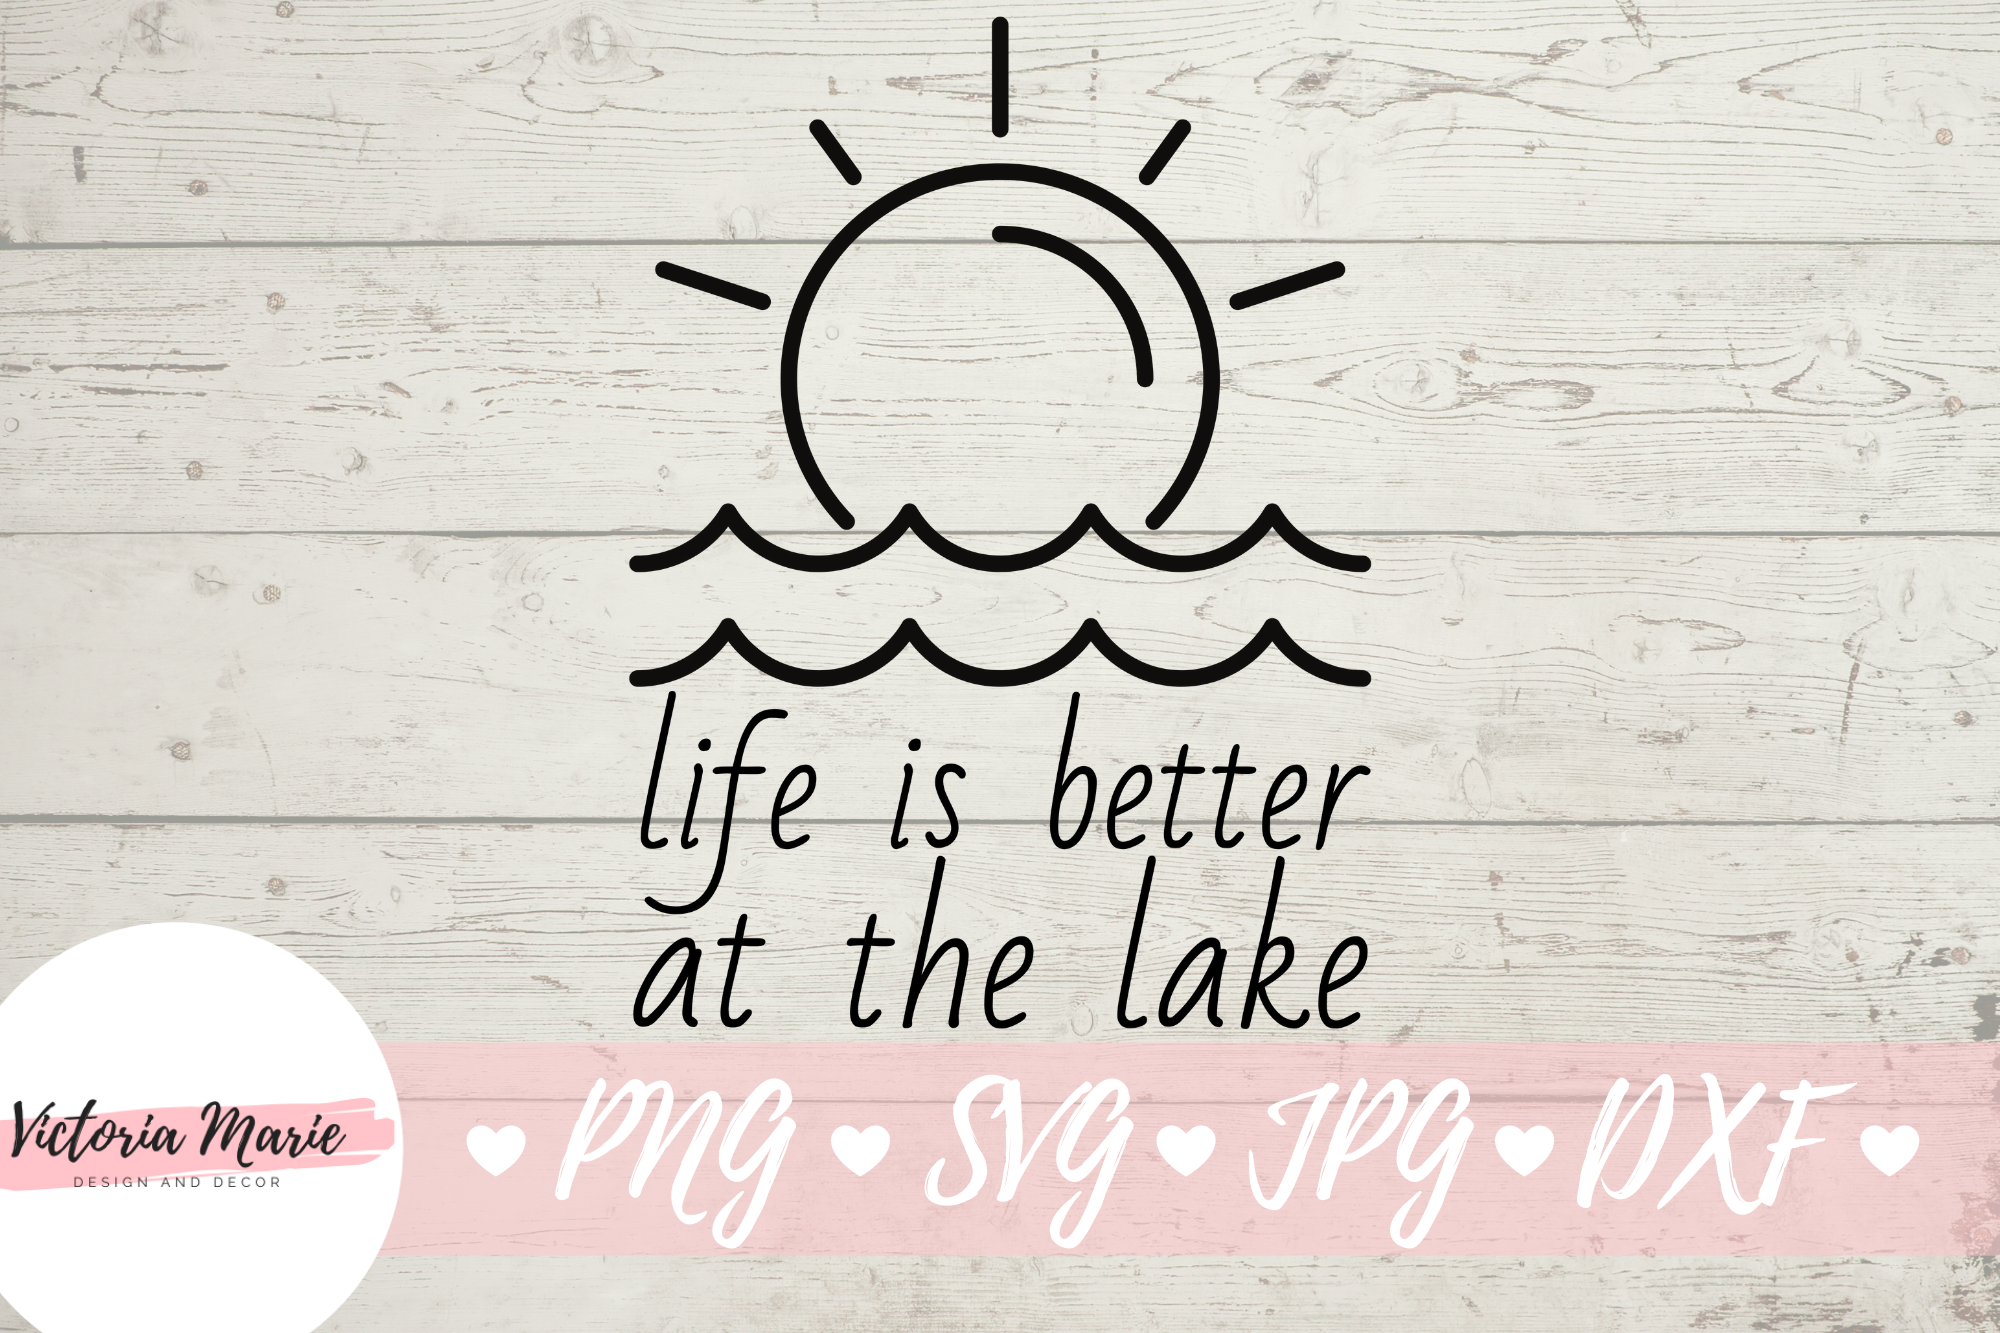 Download Free Life Is Better At The Lake Graphic By Victoria Turecamo for Cricut Explore, Silhouette and other cutting machines.